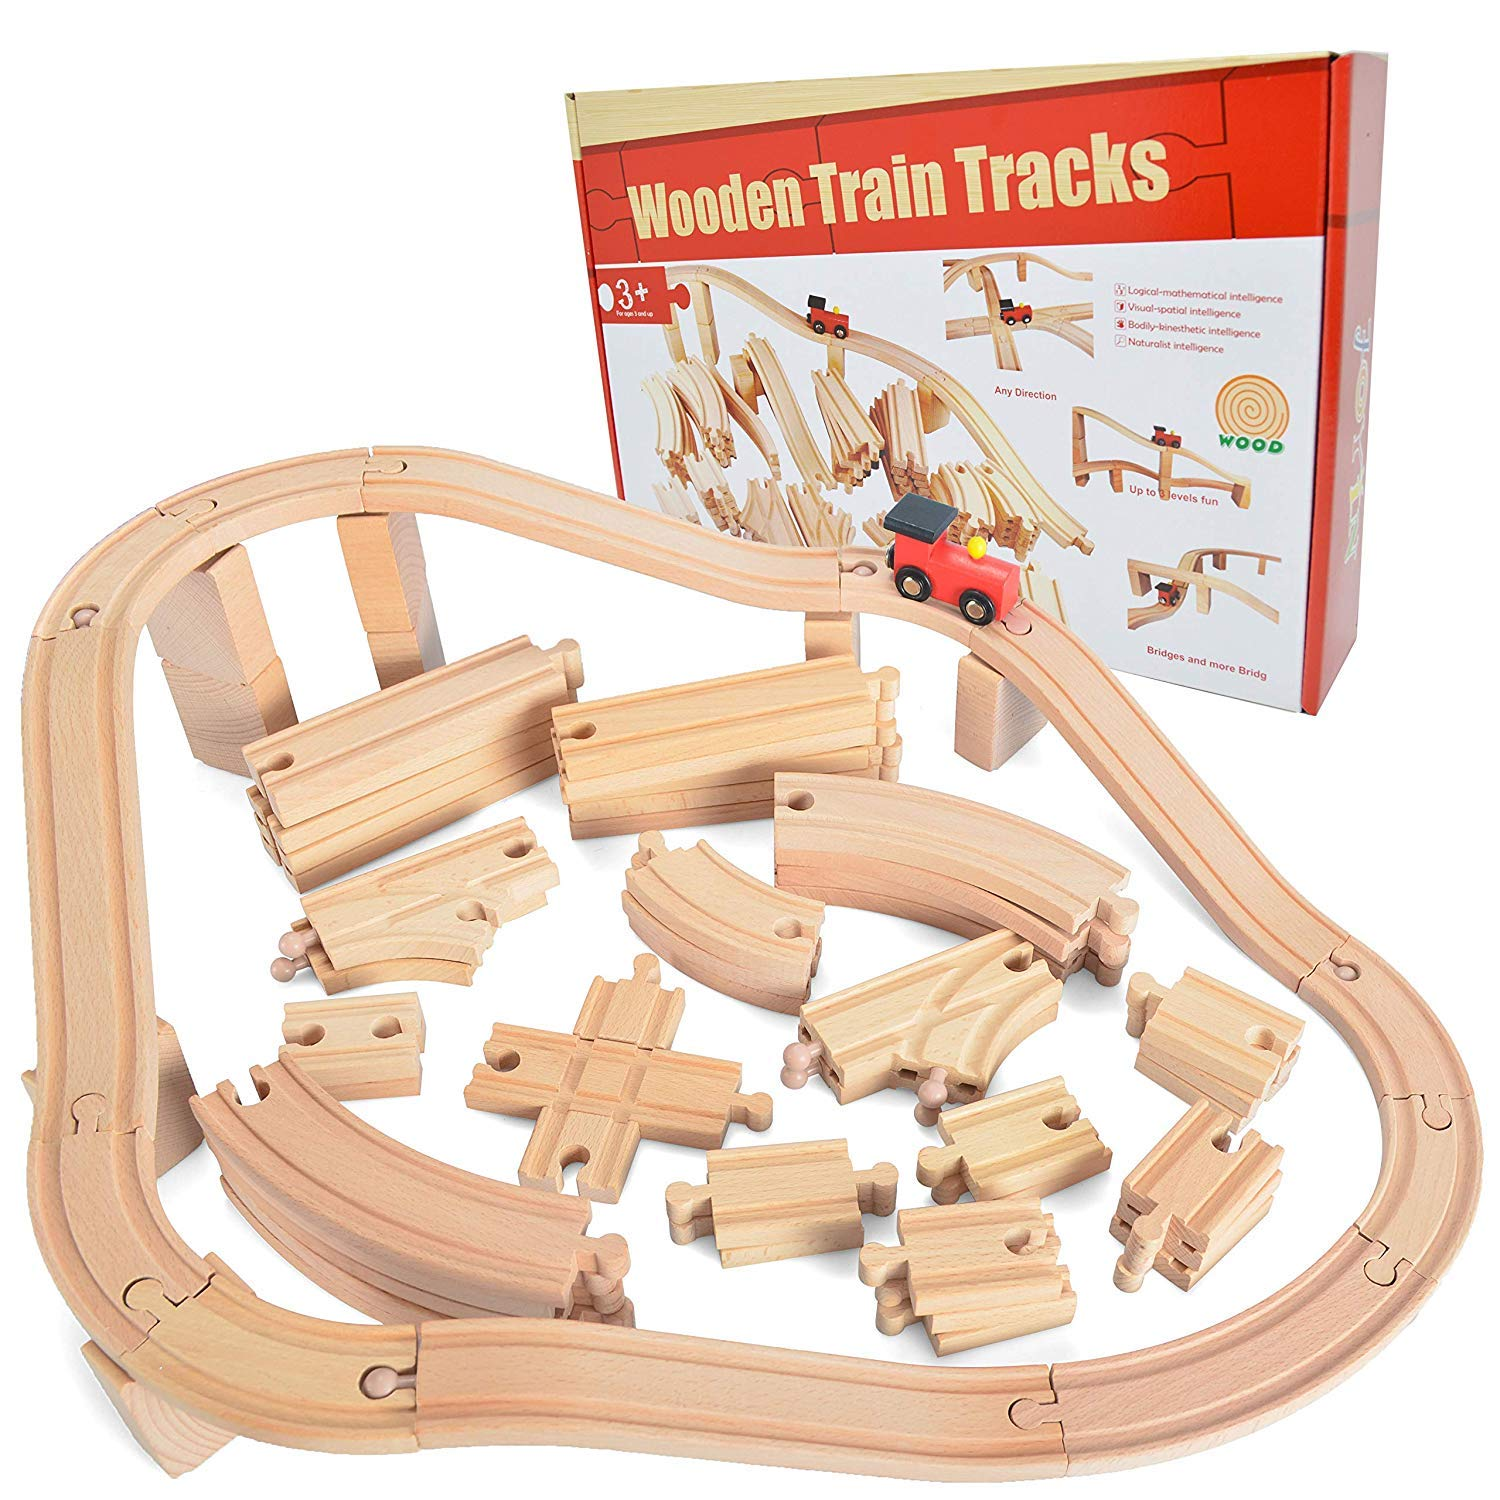 62 Pieces Wooden Train Track Expansion Set + 1 Bonus Toy Train -- New Version Compatible with All Major Brands Including Thomas Battery Operated Motorized Ones by Toy